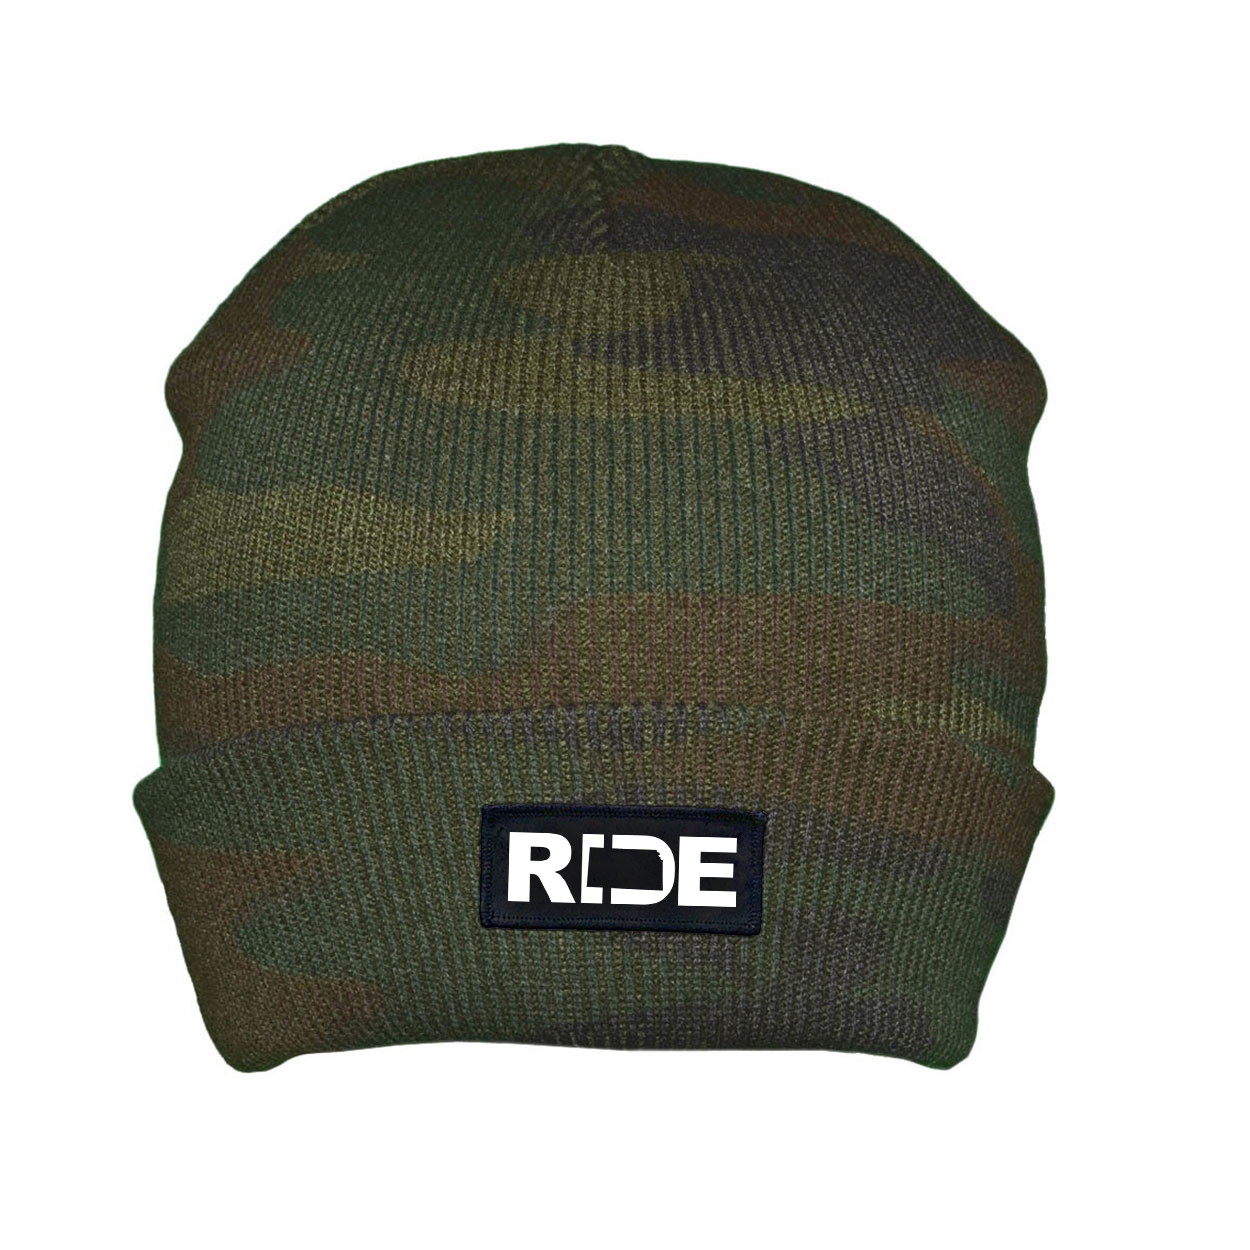 Ride Kansas Night Out Woven Patch Roll Up Skully Beanie Camo (White Logo)